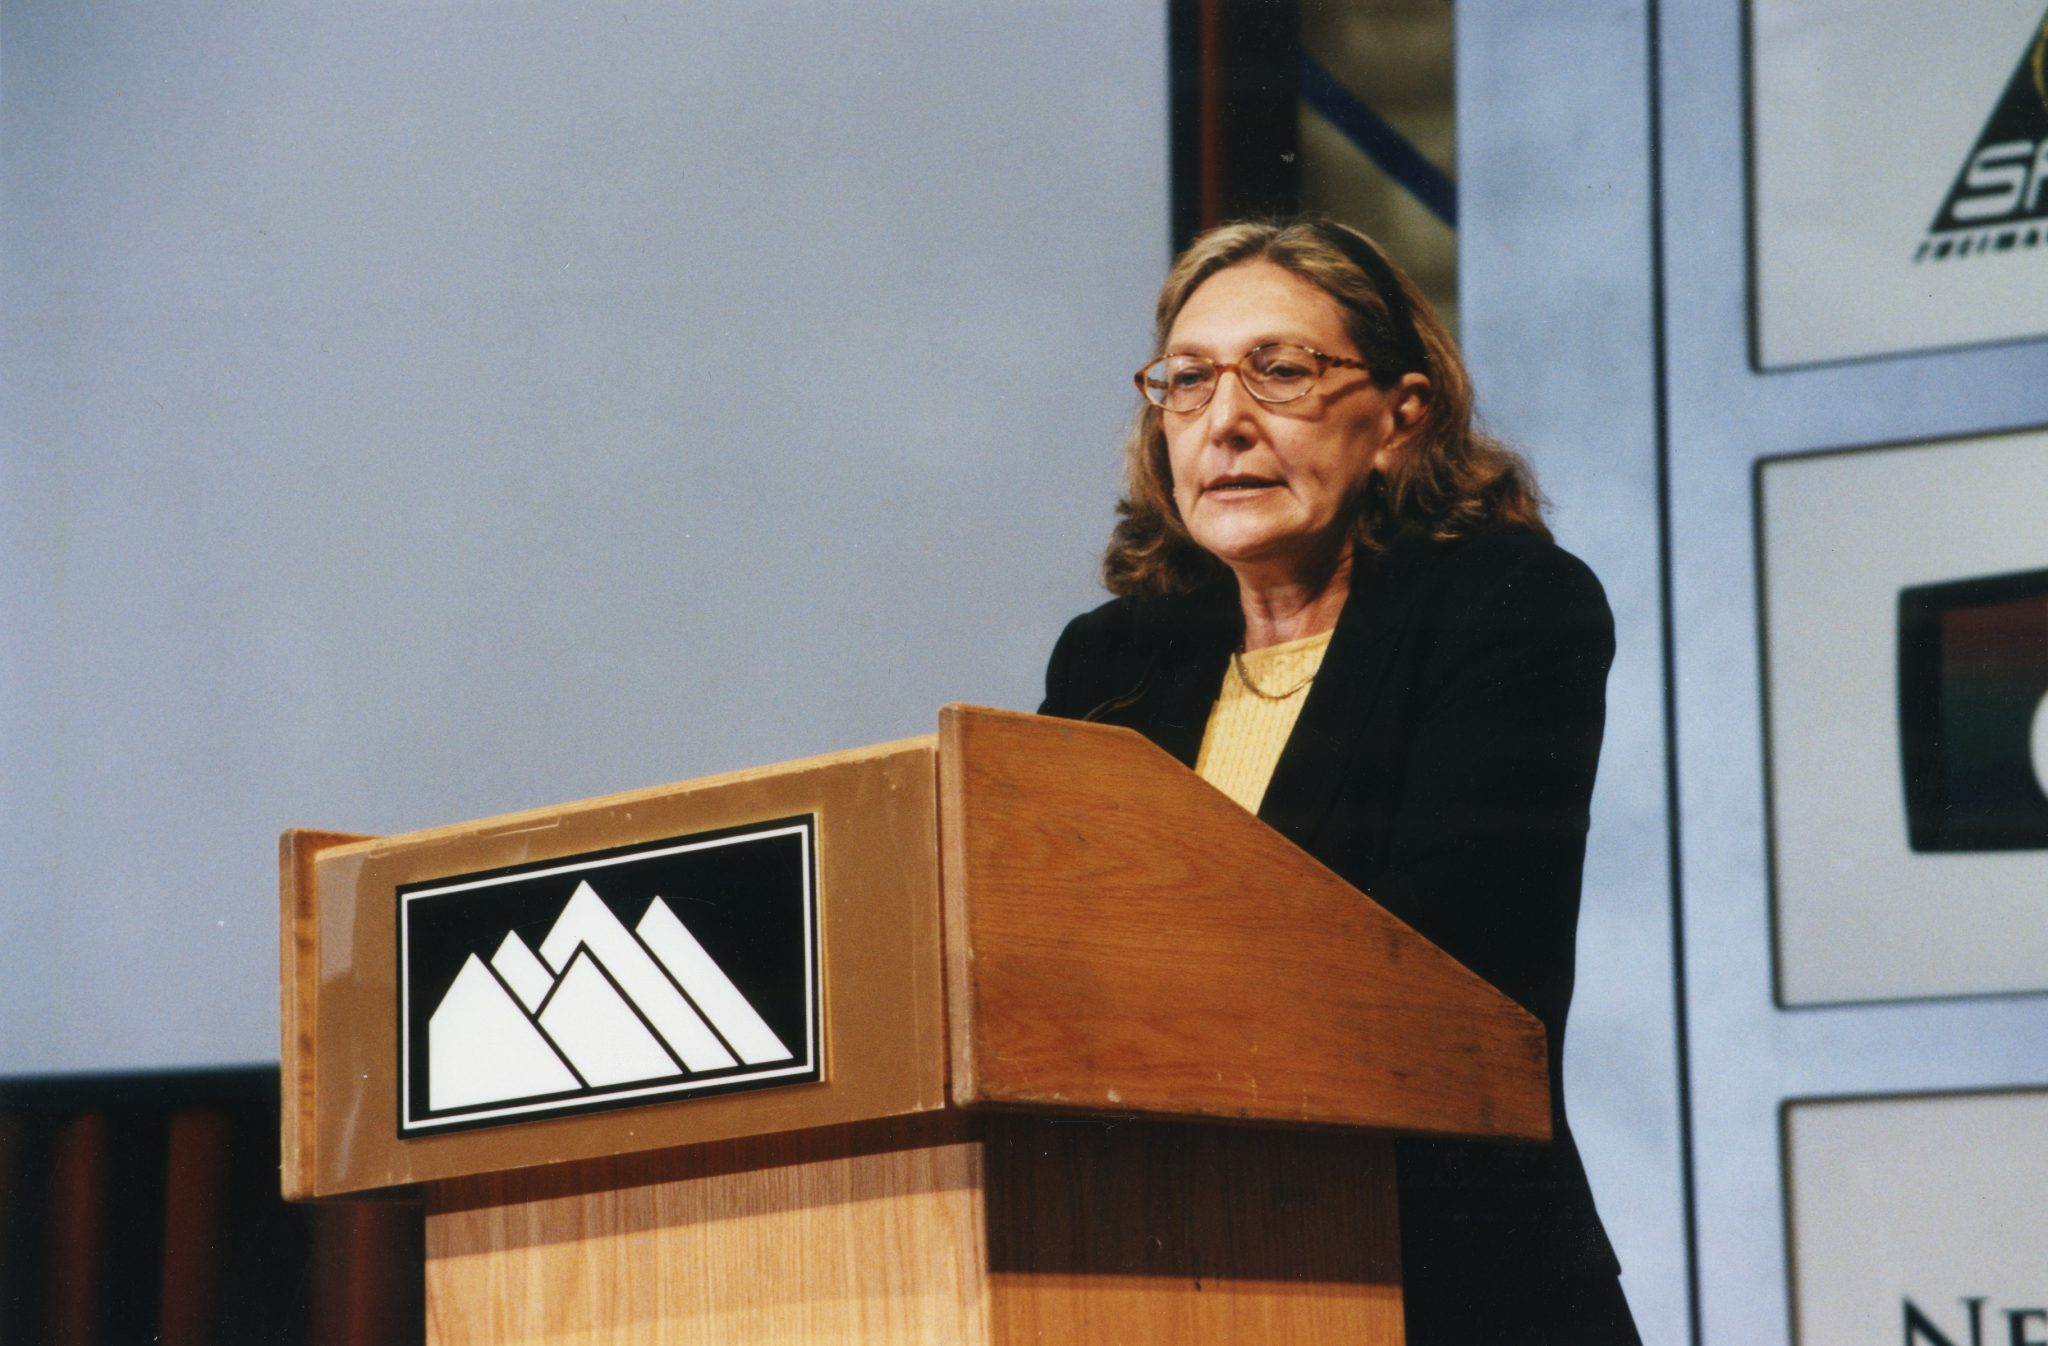 Speaking at a conference